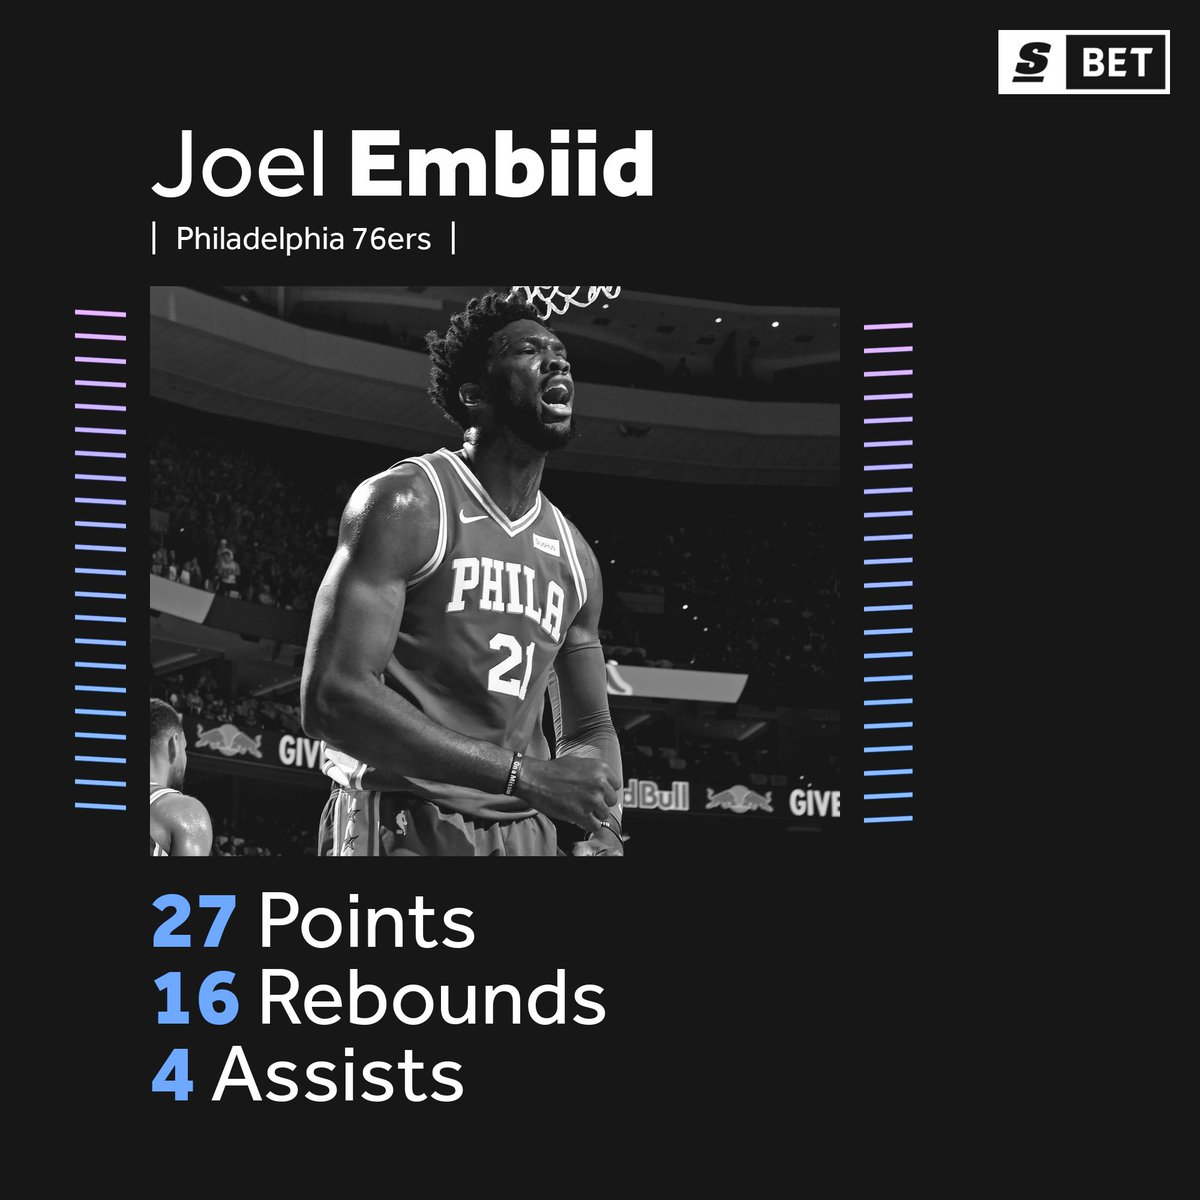 Joel Embiid leads the Sixers to a clutch 98-97 win over the Cavs. 👏 (via @theScoreBet)